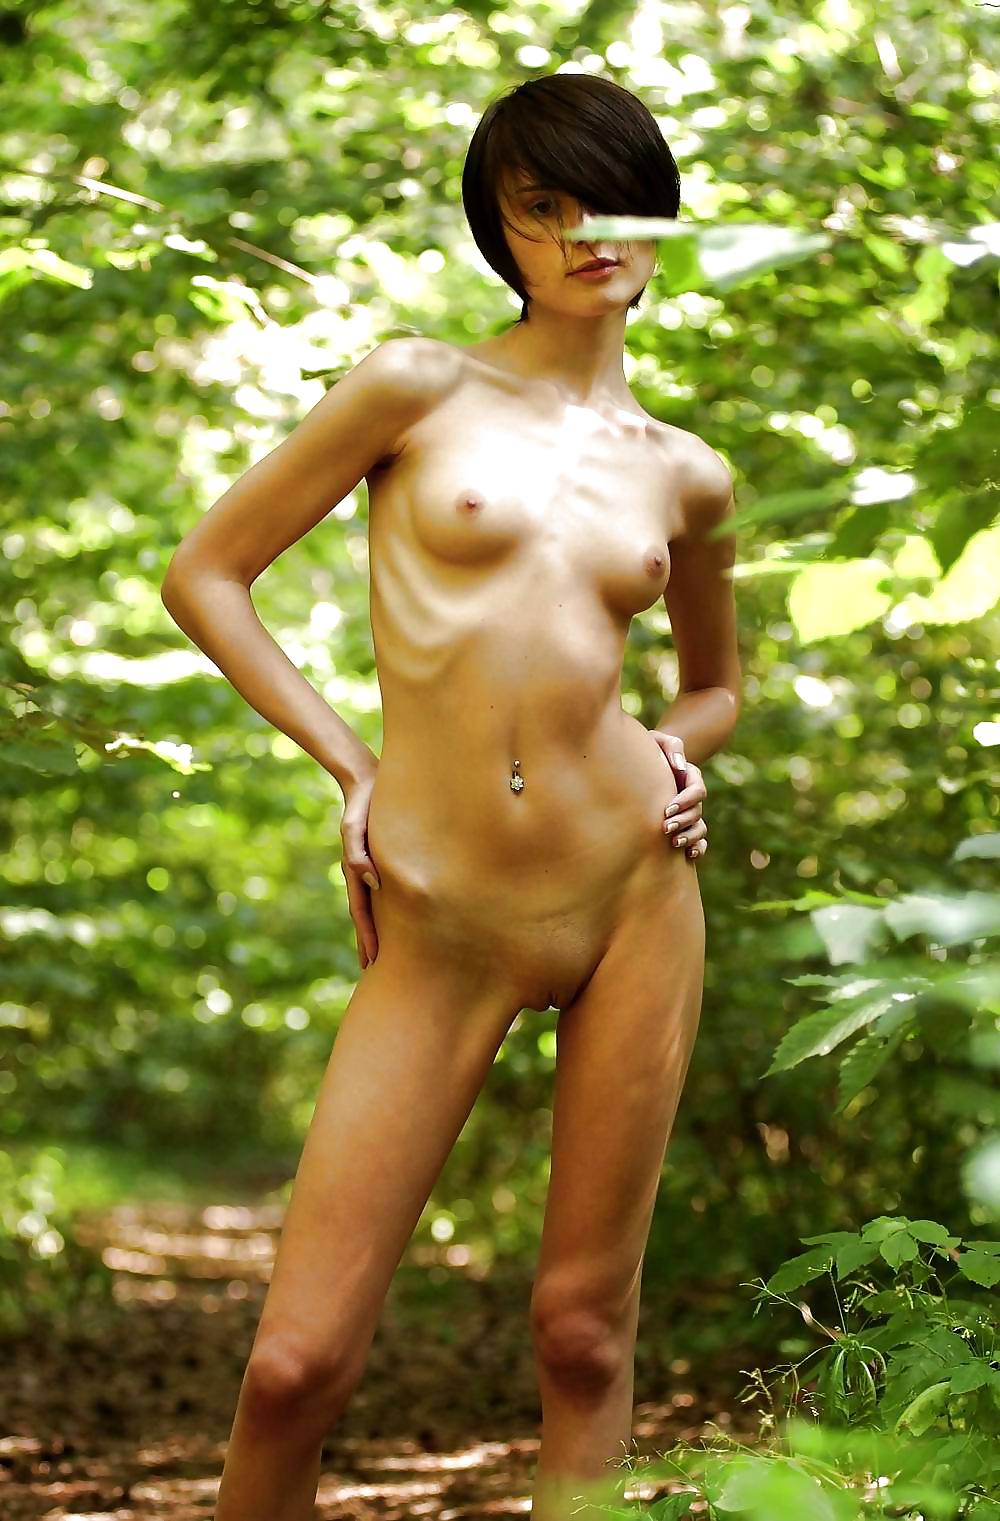 pictures-of-skinny-women-naked-little-pussy